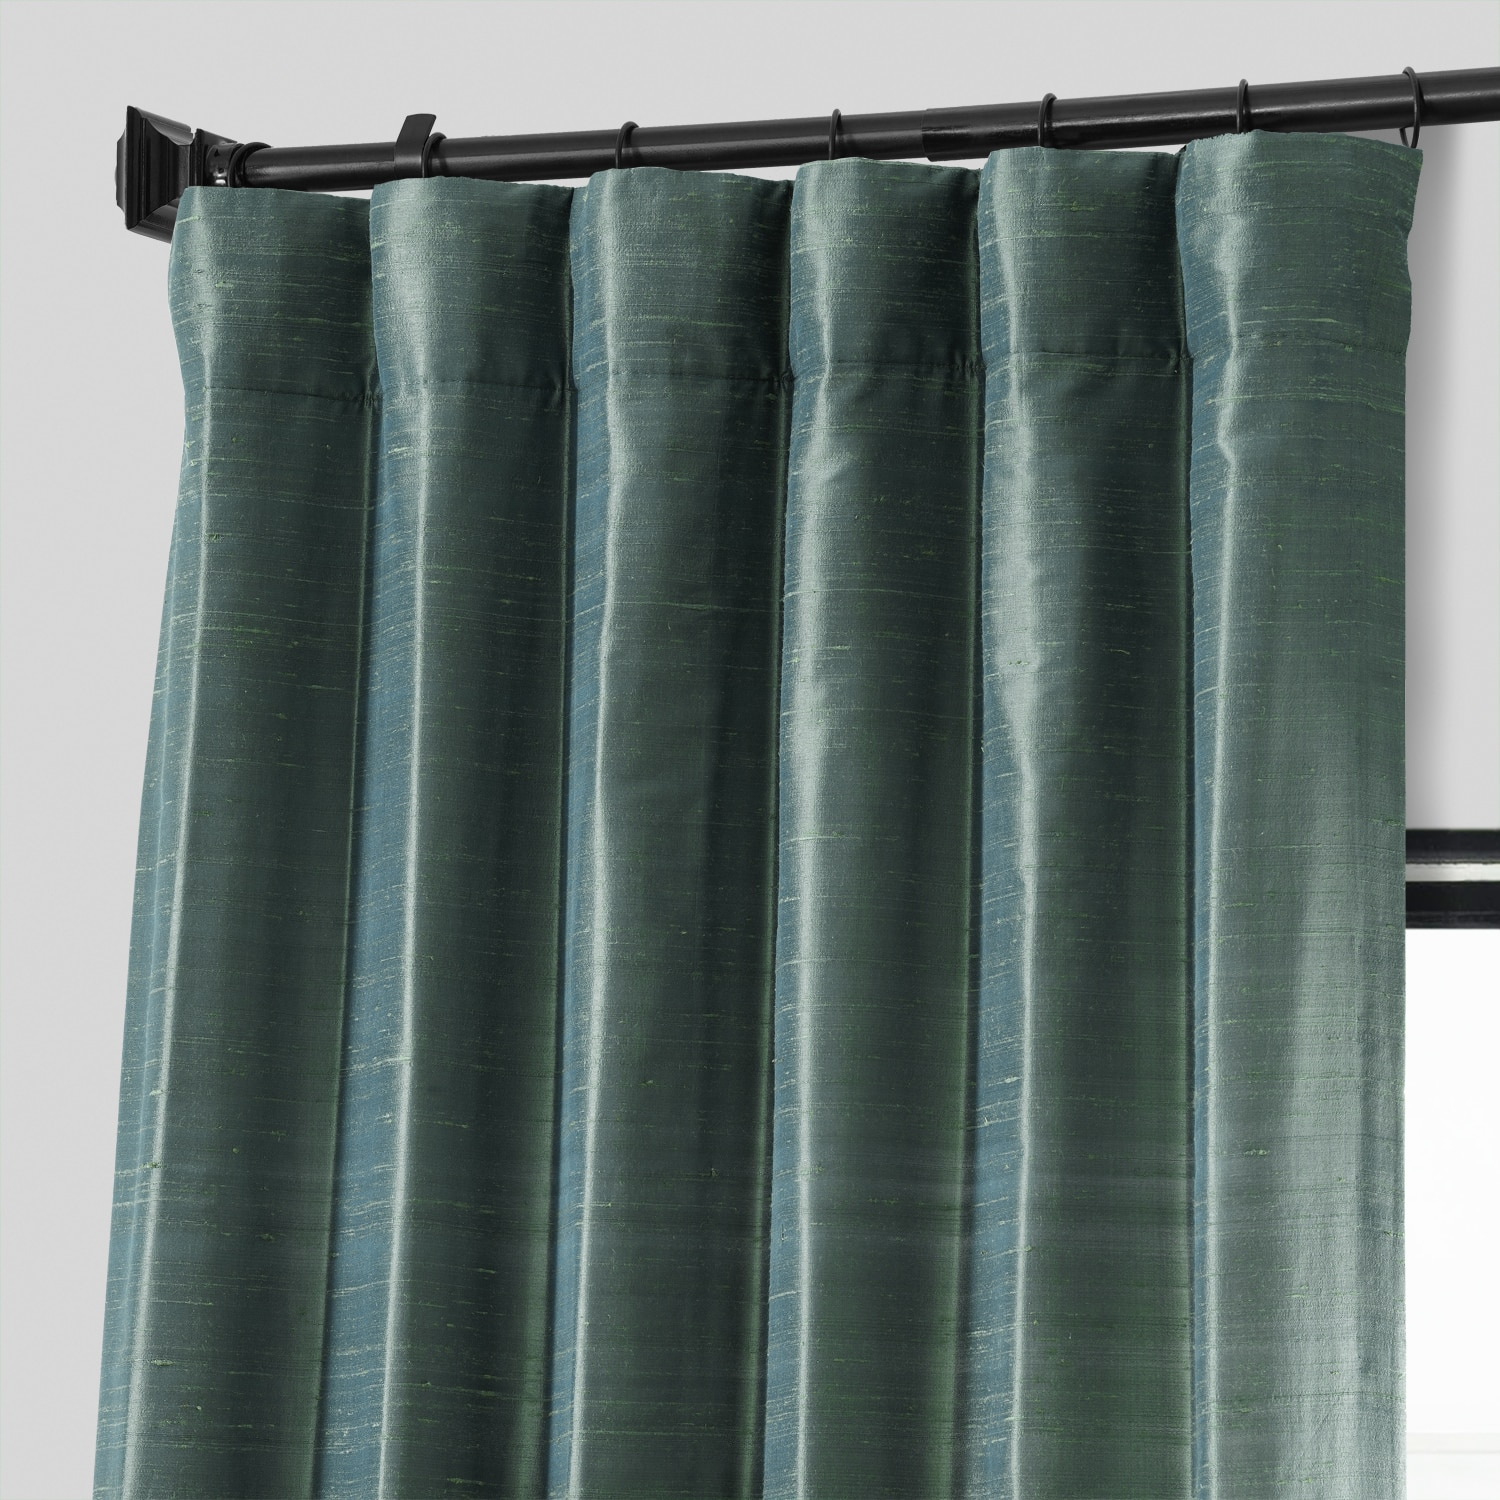 Sea Spray Textured Dupioni Silk Curtain